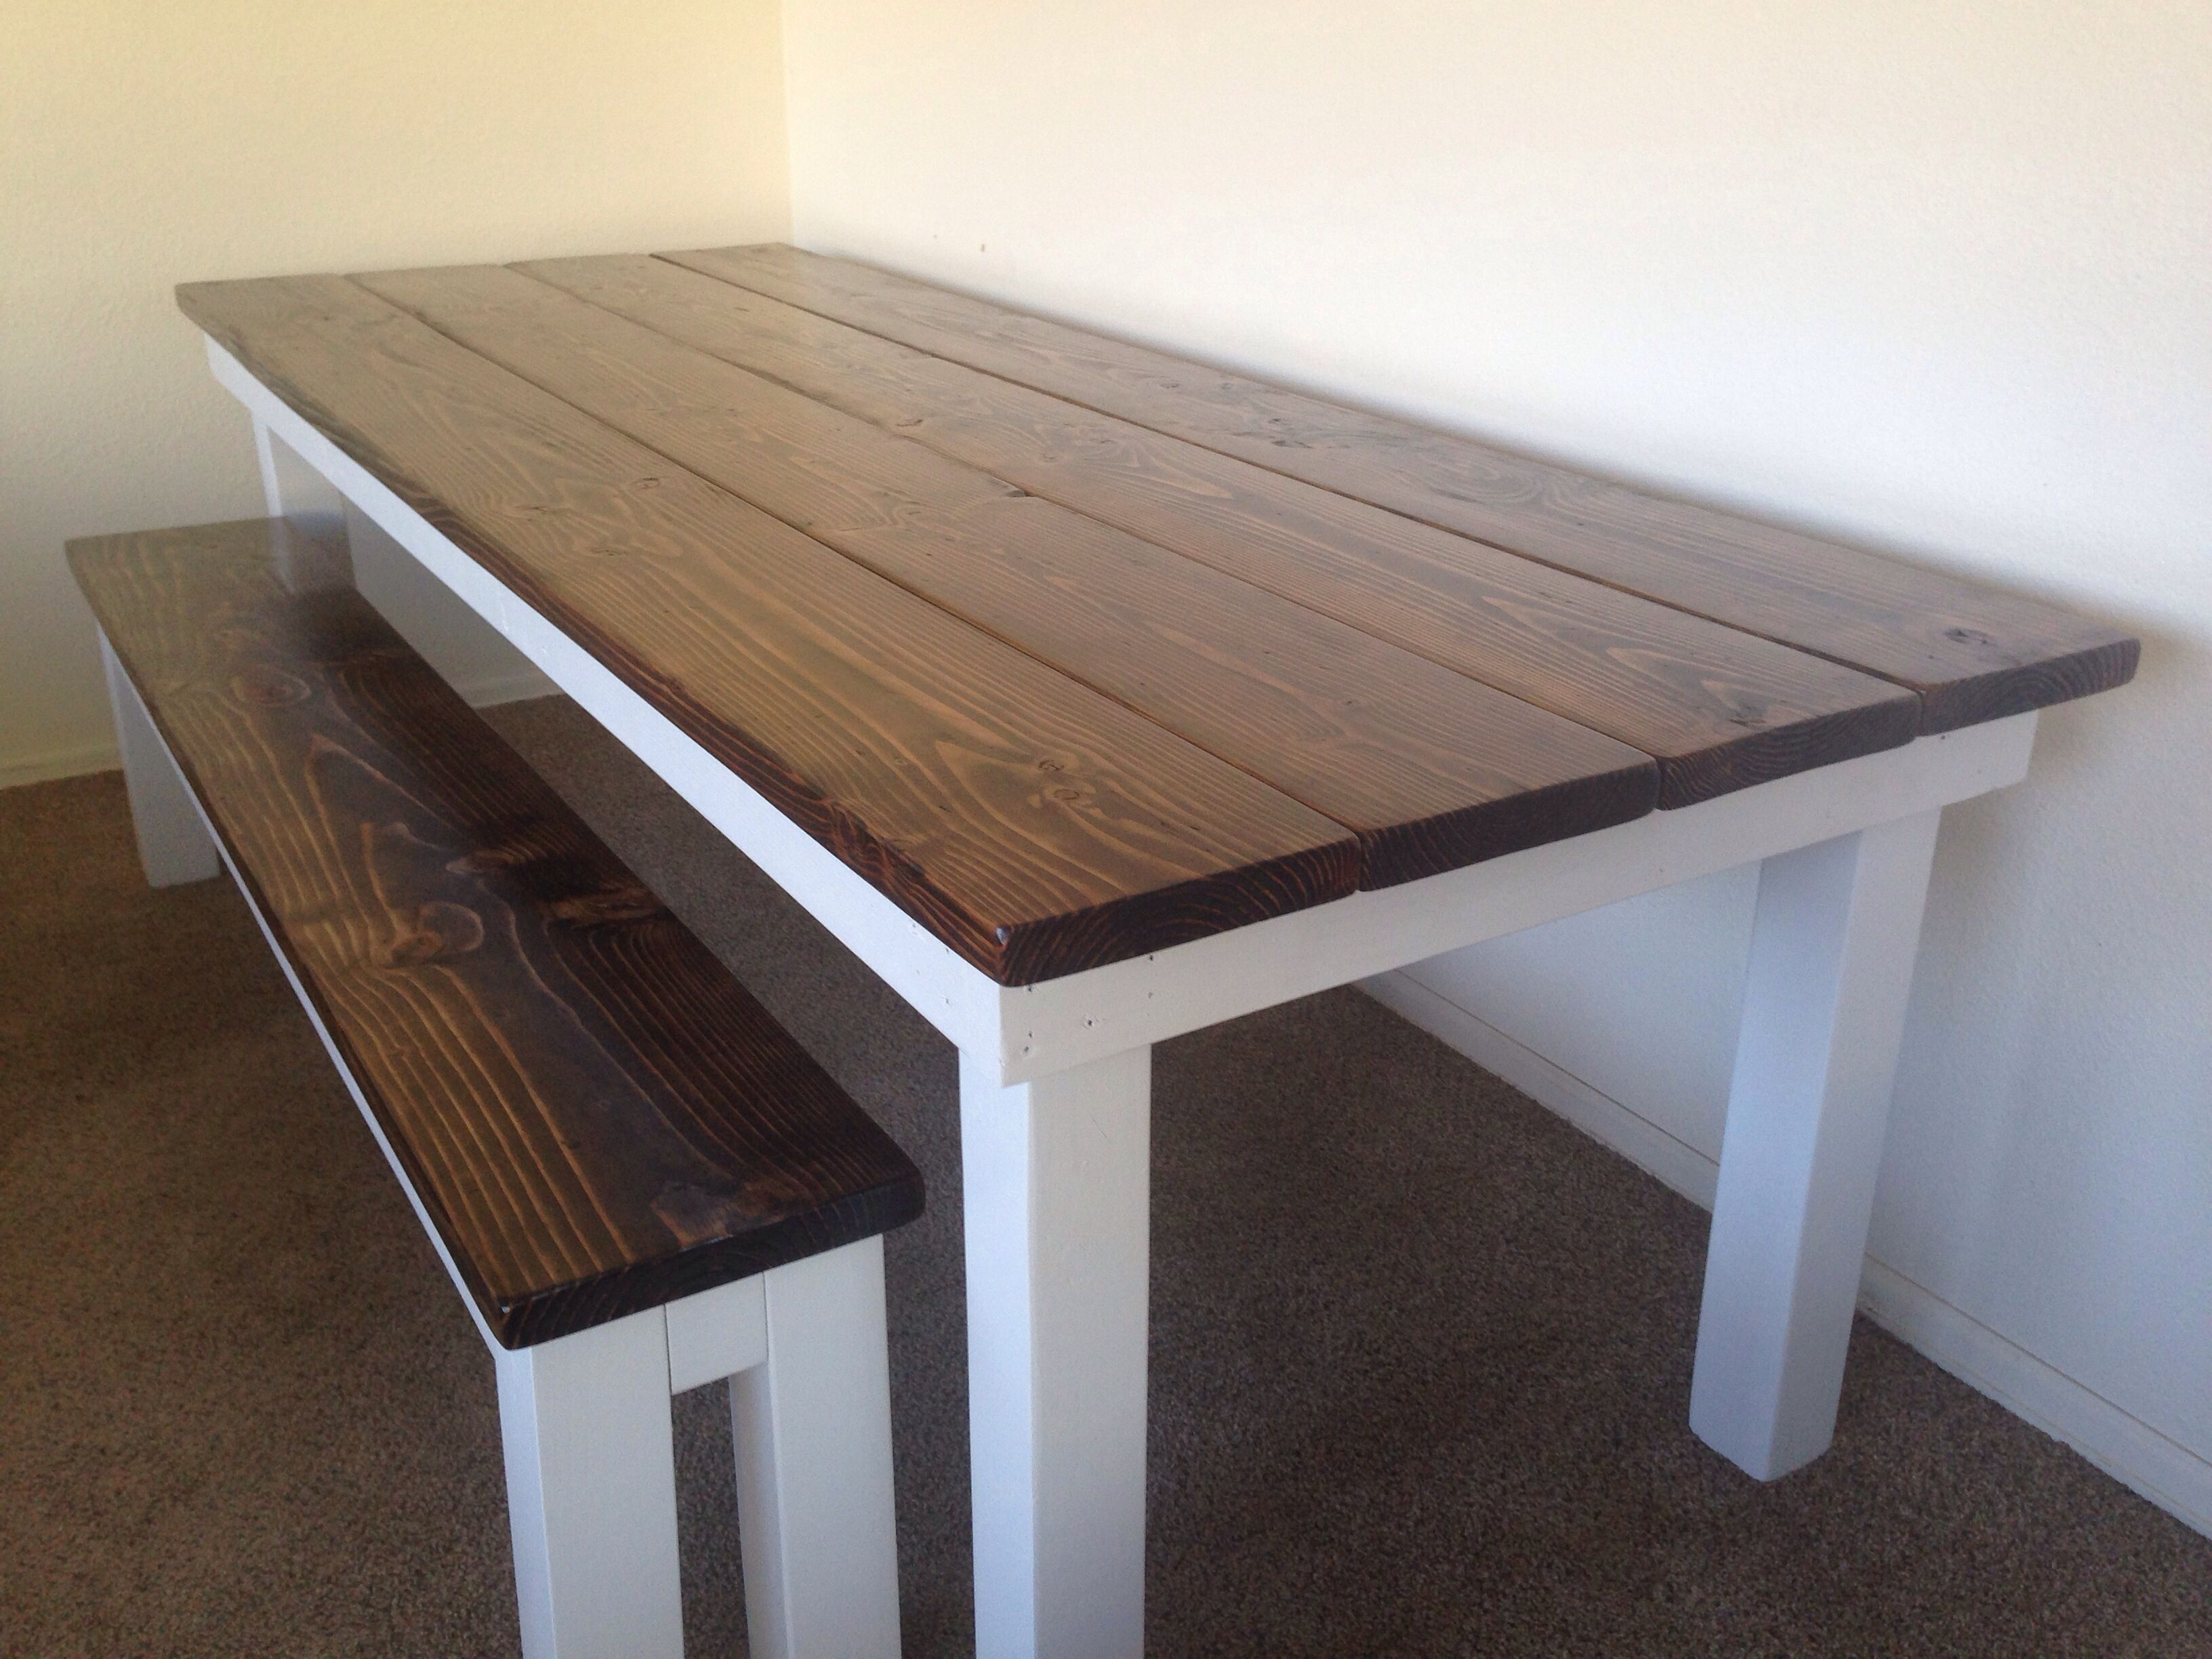 Custom Planked Top Farmhouse Table With Dark Walnut Stain And White Base.  Visit Http